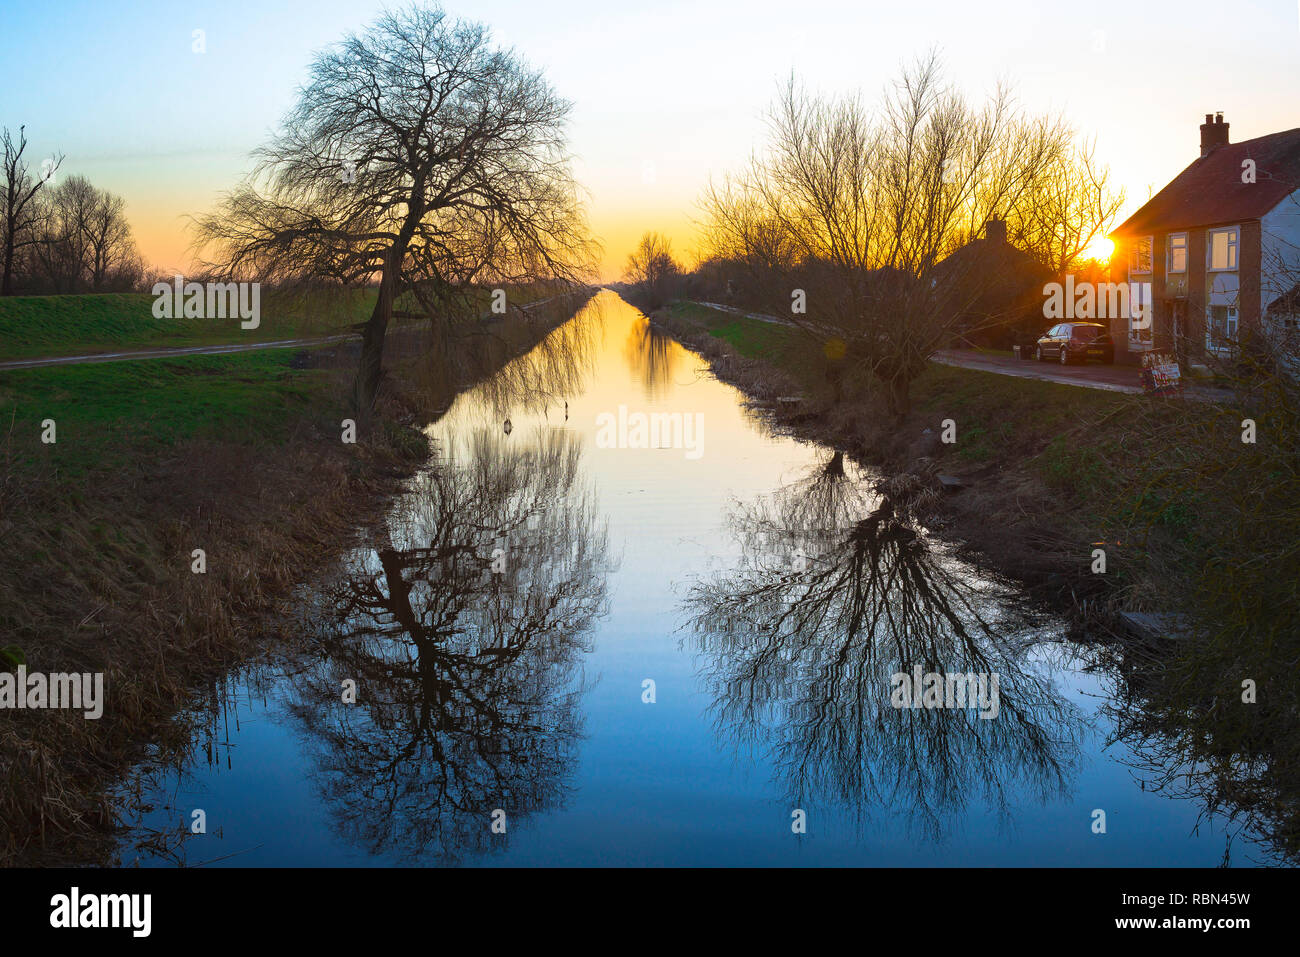 Fens Cambridgeshire UK, sunset view of Vermuydens's Drain (1630)  - a man-made waterway running straight across the Cambridgeshire fens for 20 miles. - Stock Image